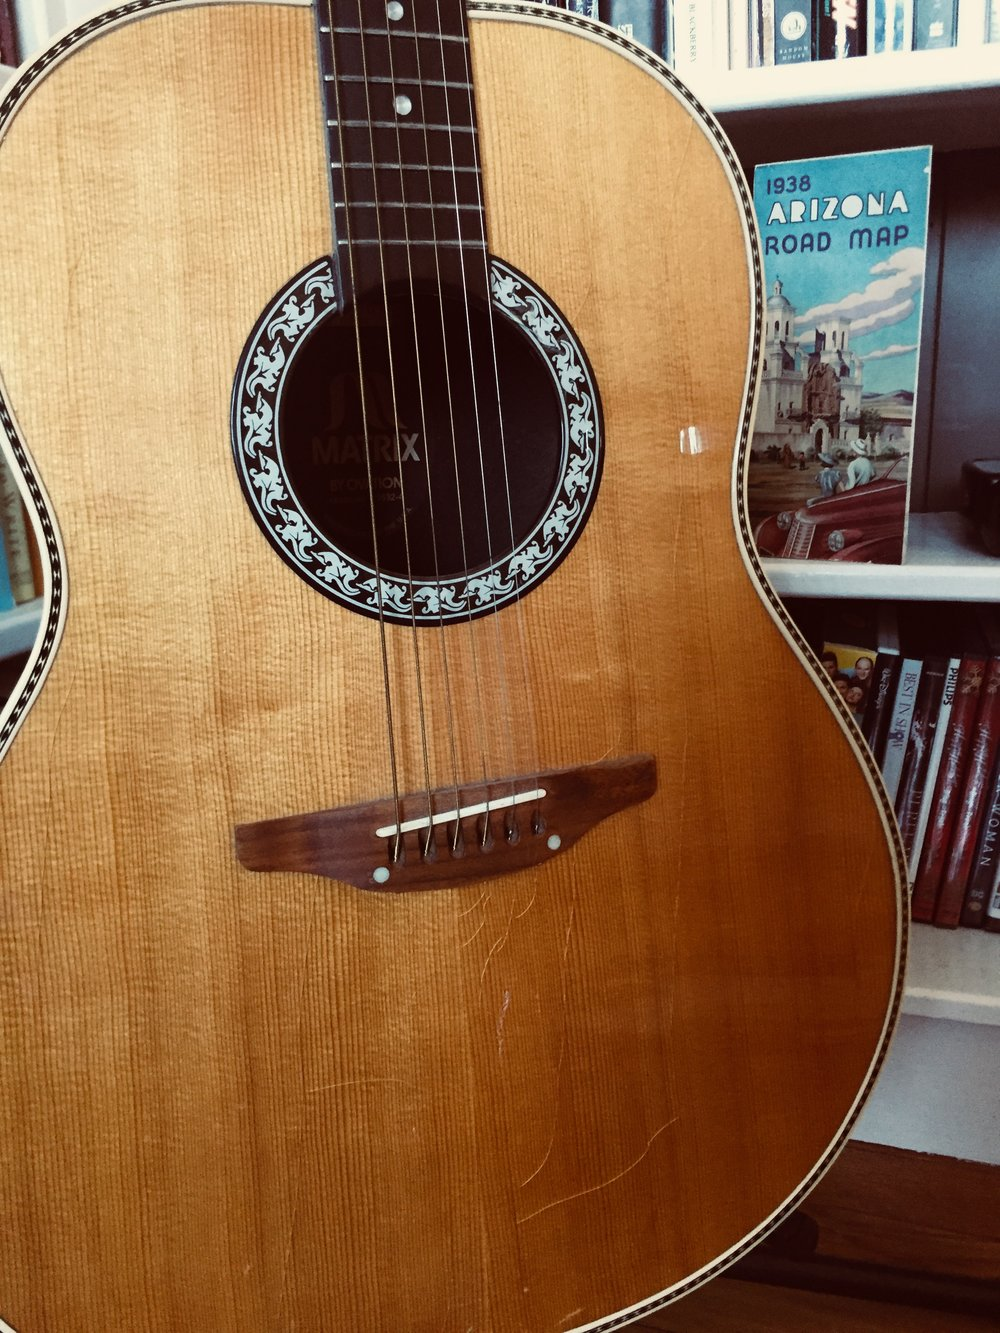 My dad's Ovation hollow body, with a few cracks in the body. Along with a 1938 map of Arizona that my grandfather used when he spent time out west being a cowboy.